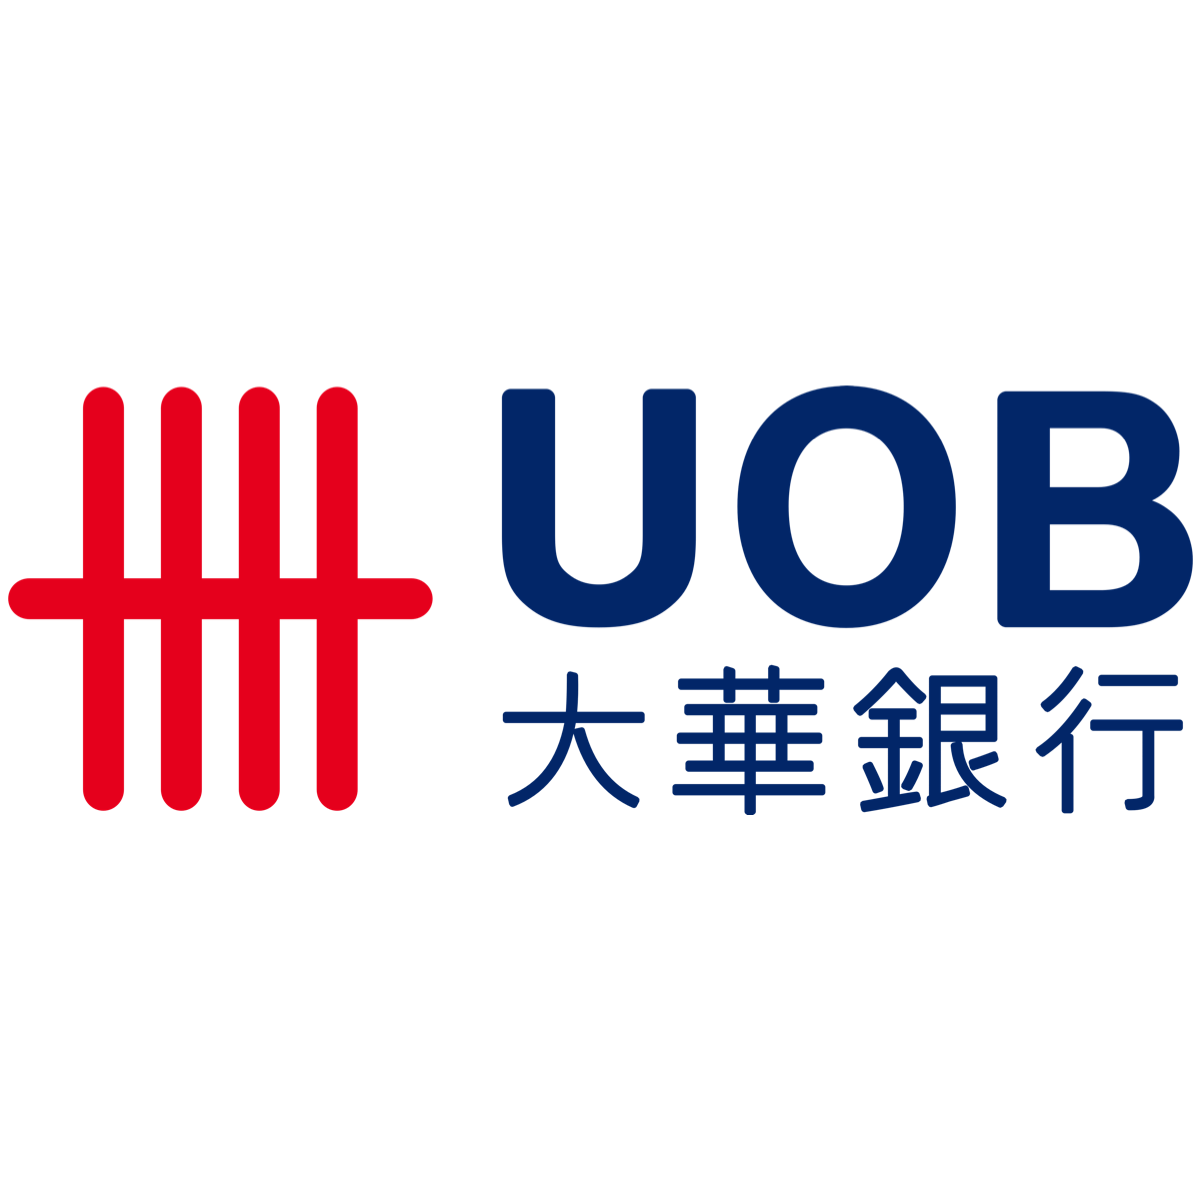 United Overseas Bank (UOB) - Maybank Kim Eng 2018-05-04: The Stars Are Aligning